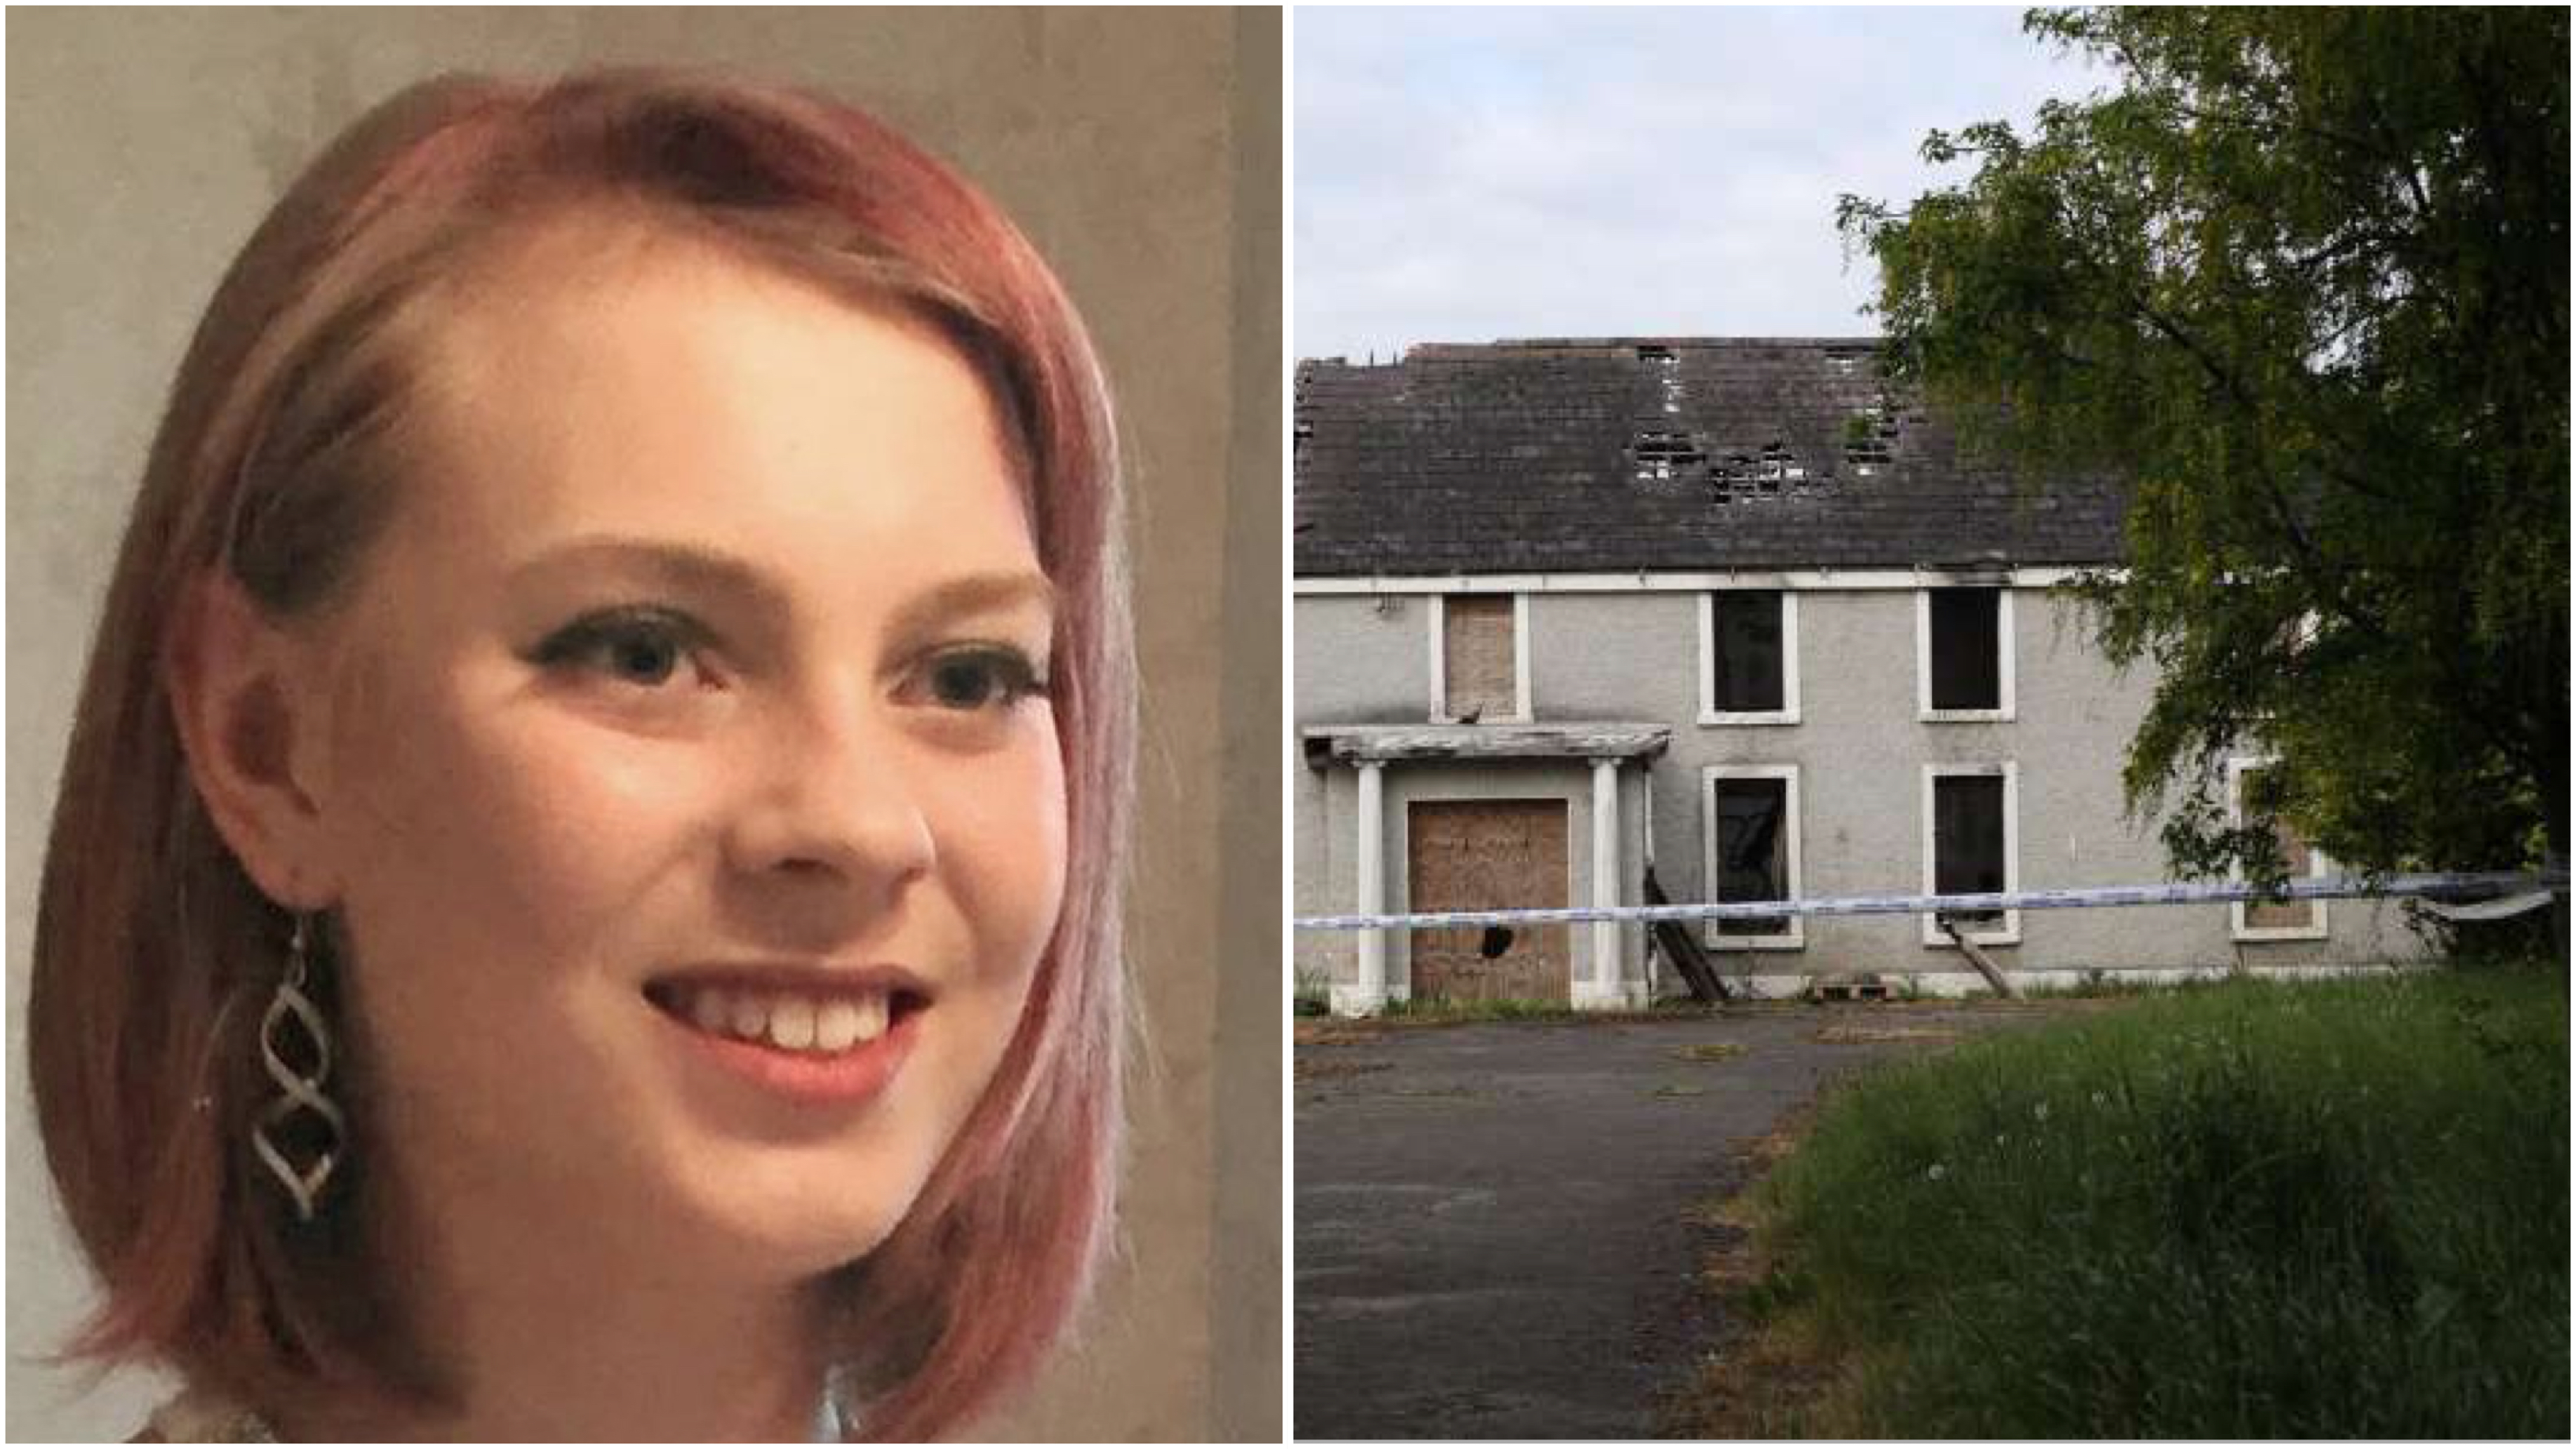 'She'll stay in our hearts forever': Guilty verdict over schoolgirl's rape and murder